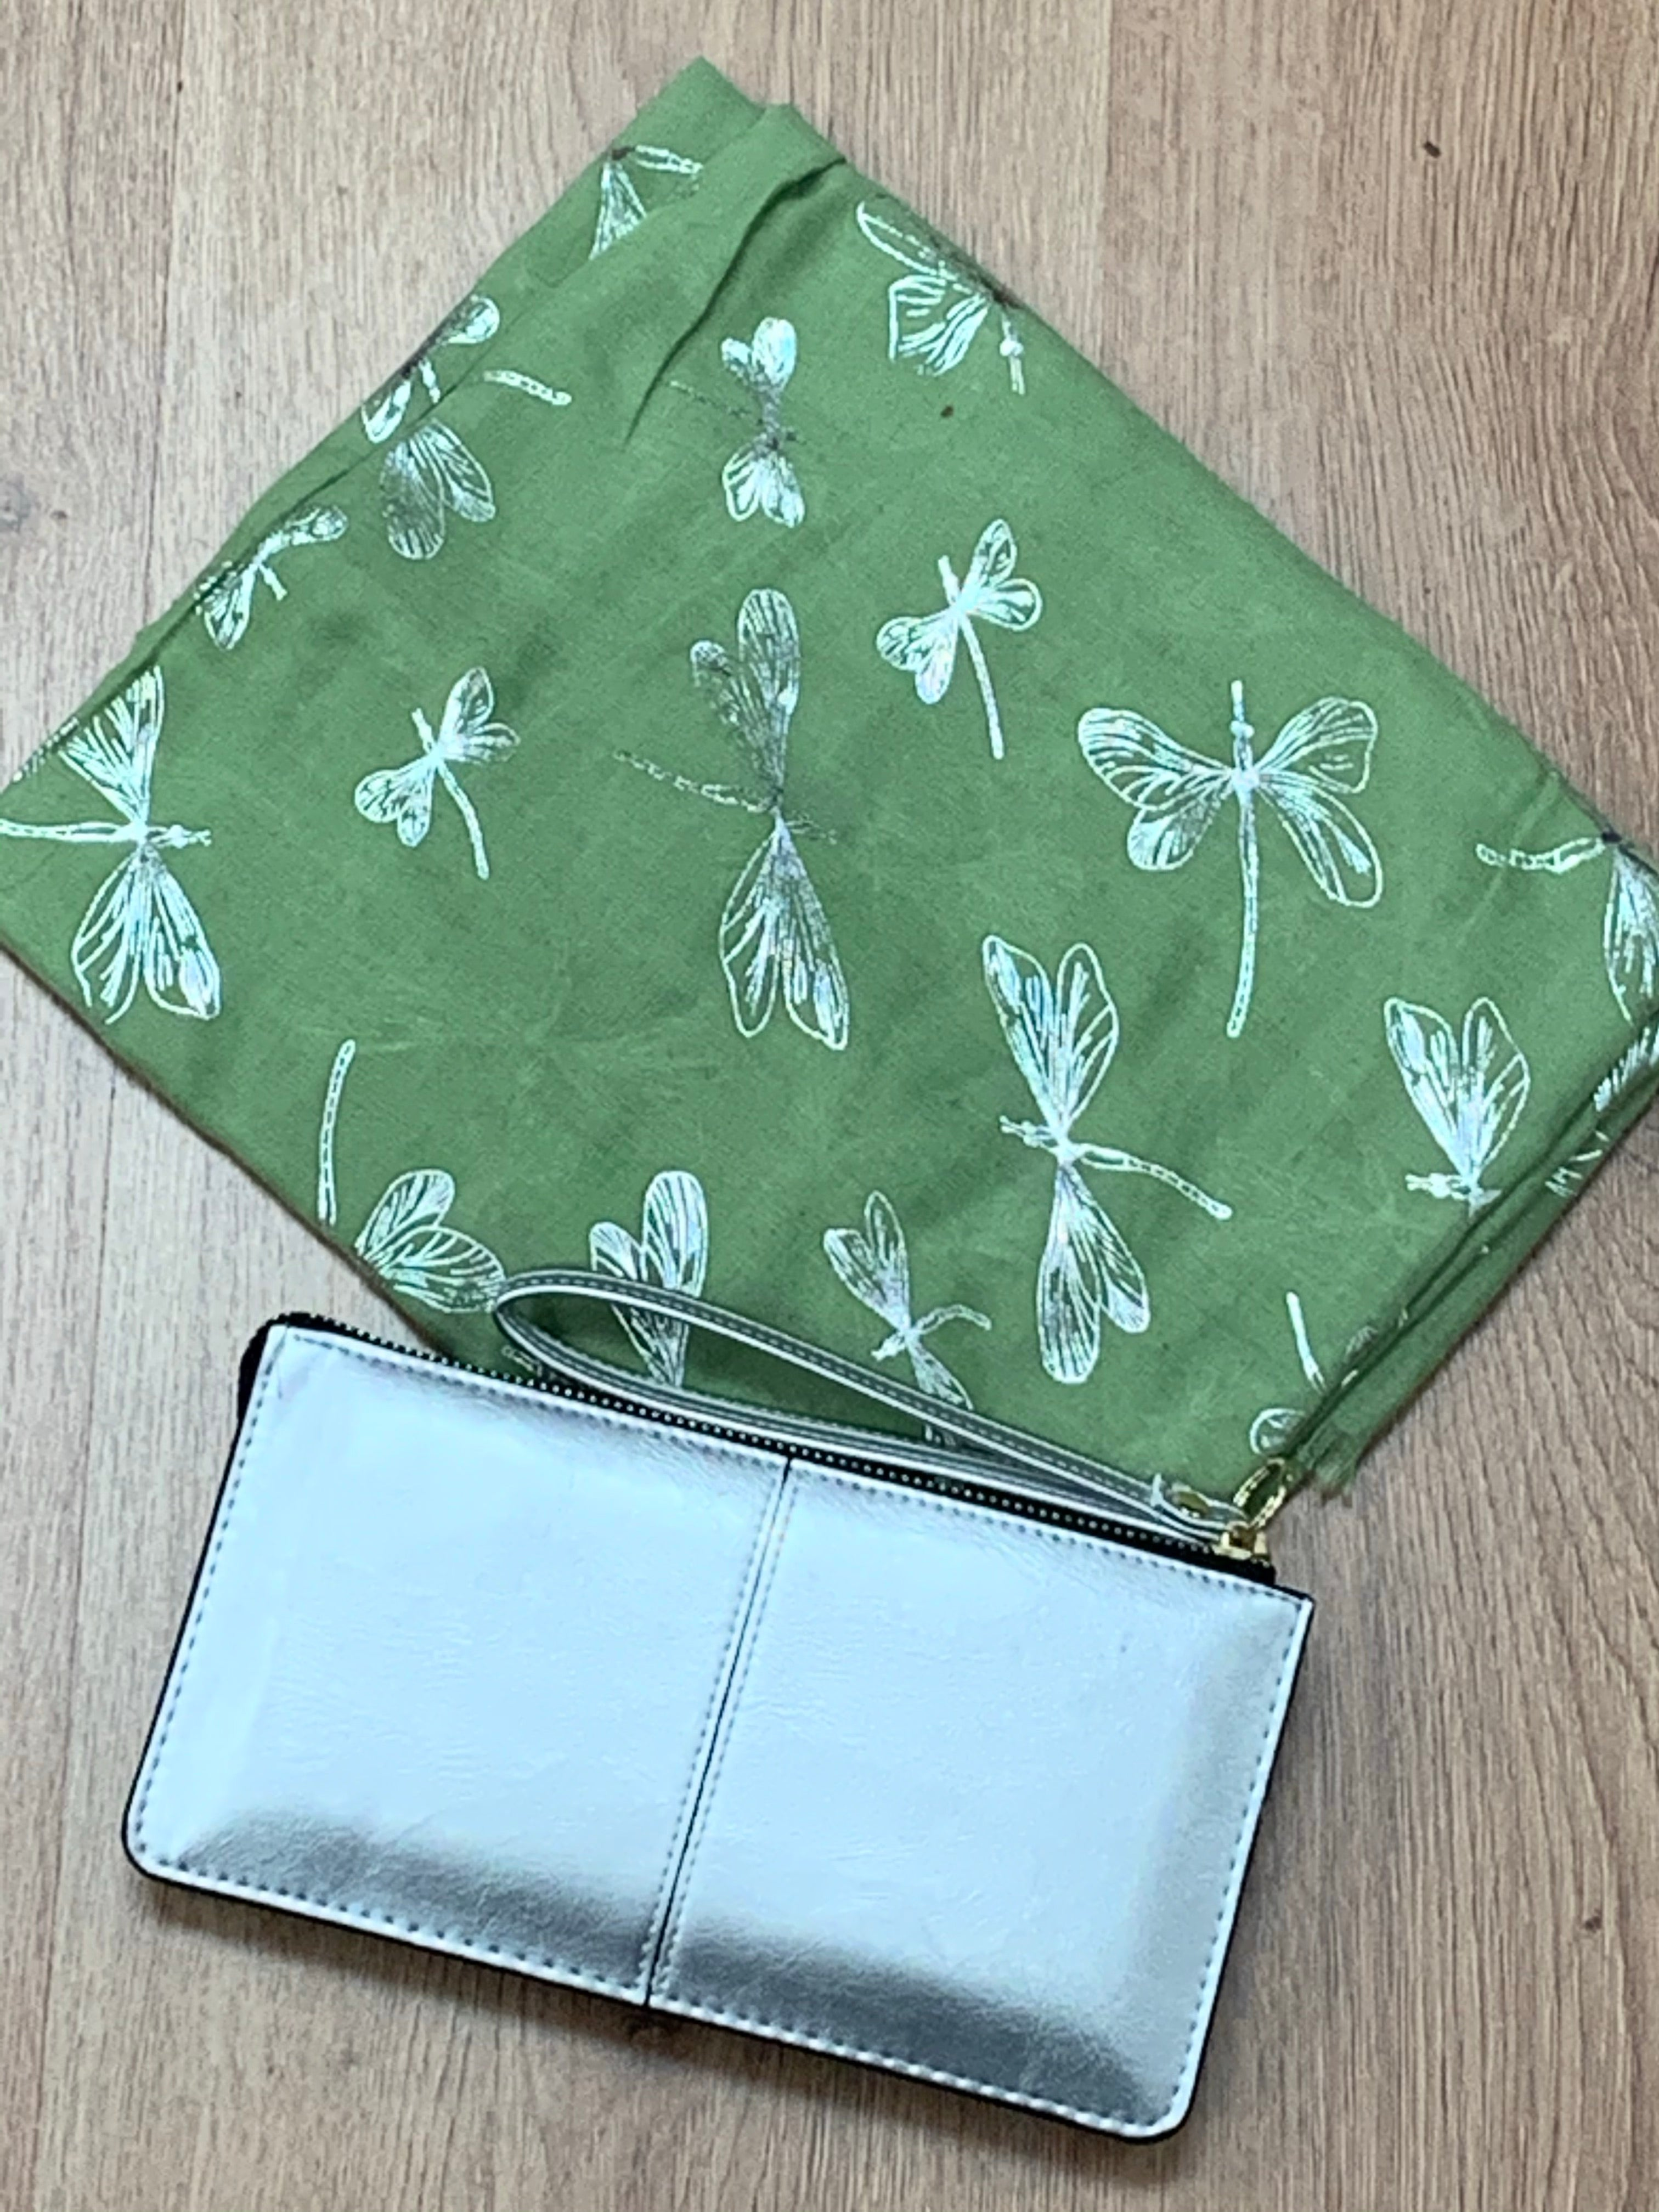 Green Dragonfly Printed Scarf & Silver Bracelet Purse Gift Set